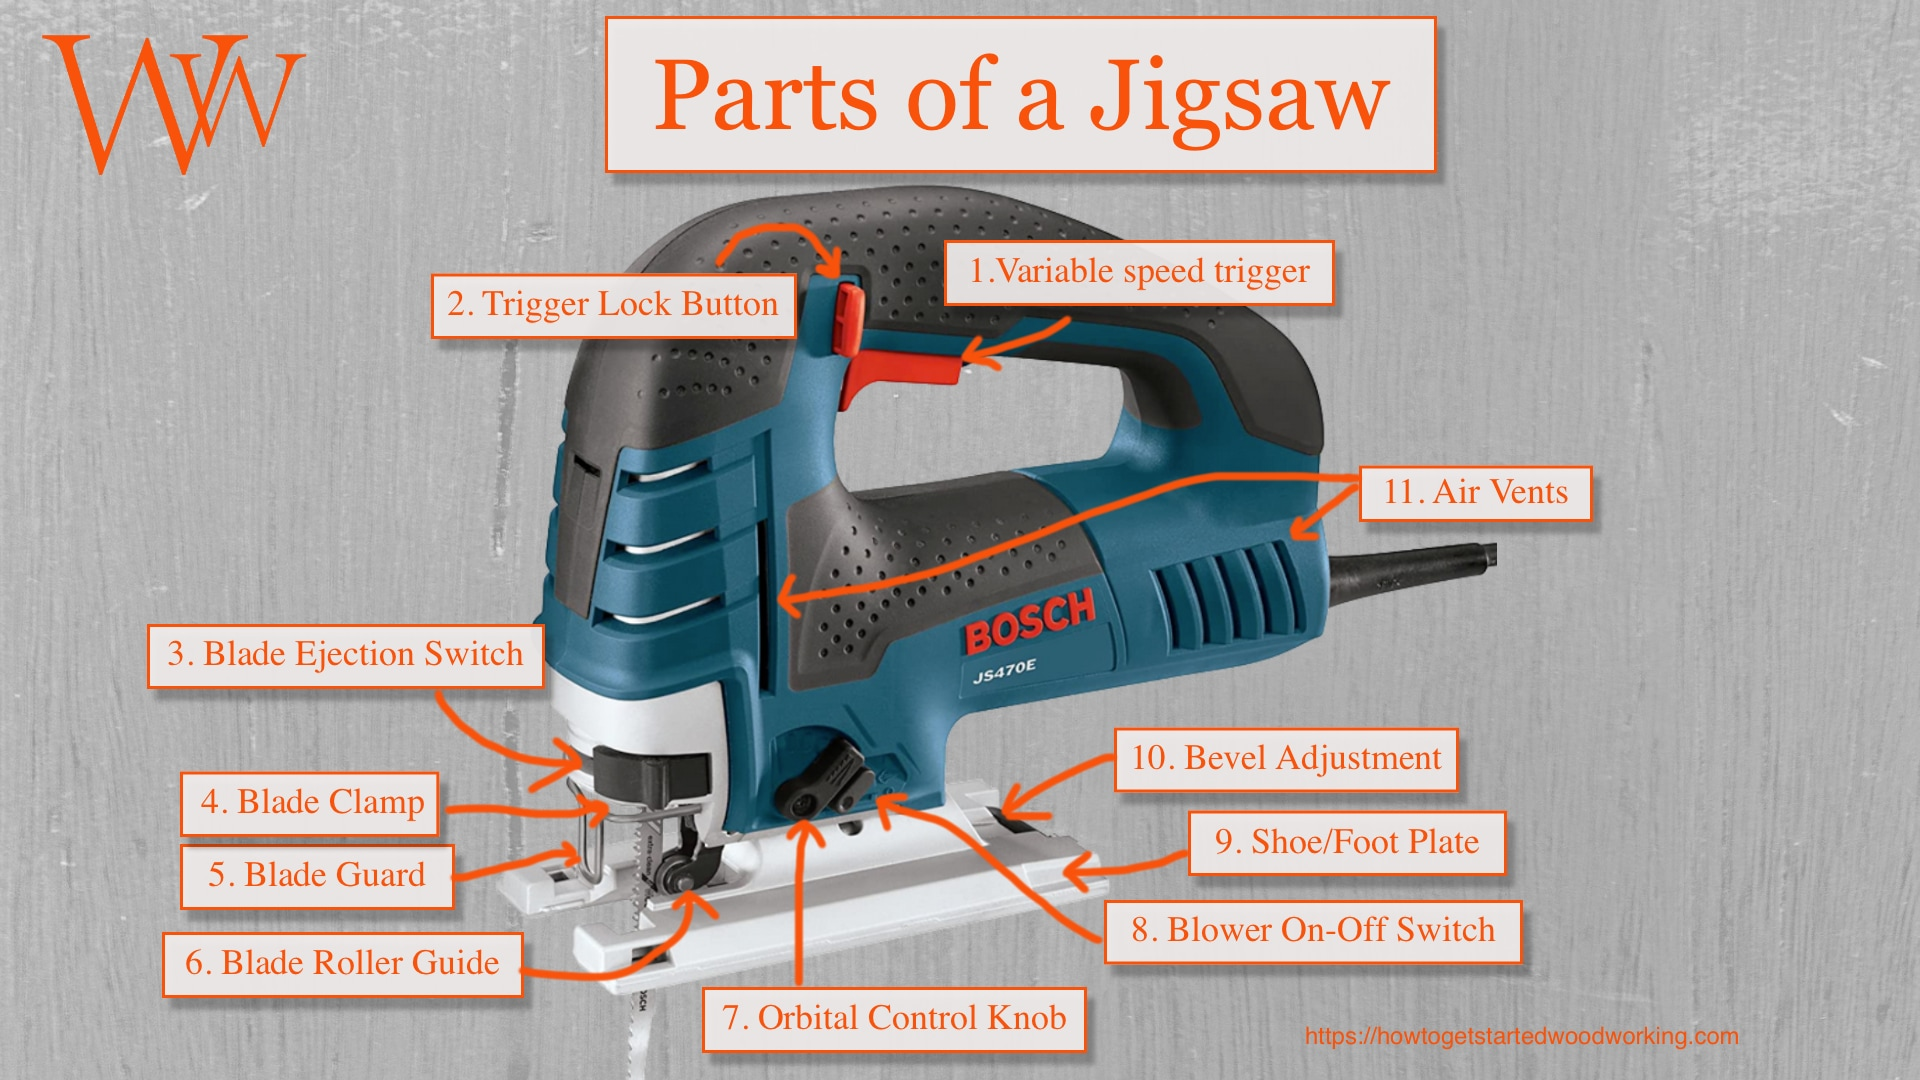 Parts of a Jigsaw